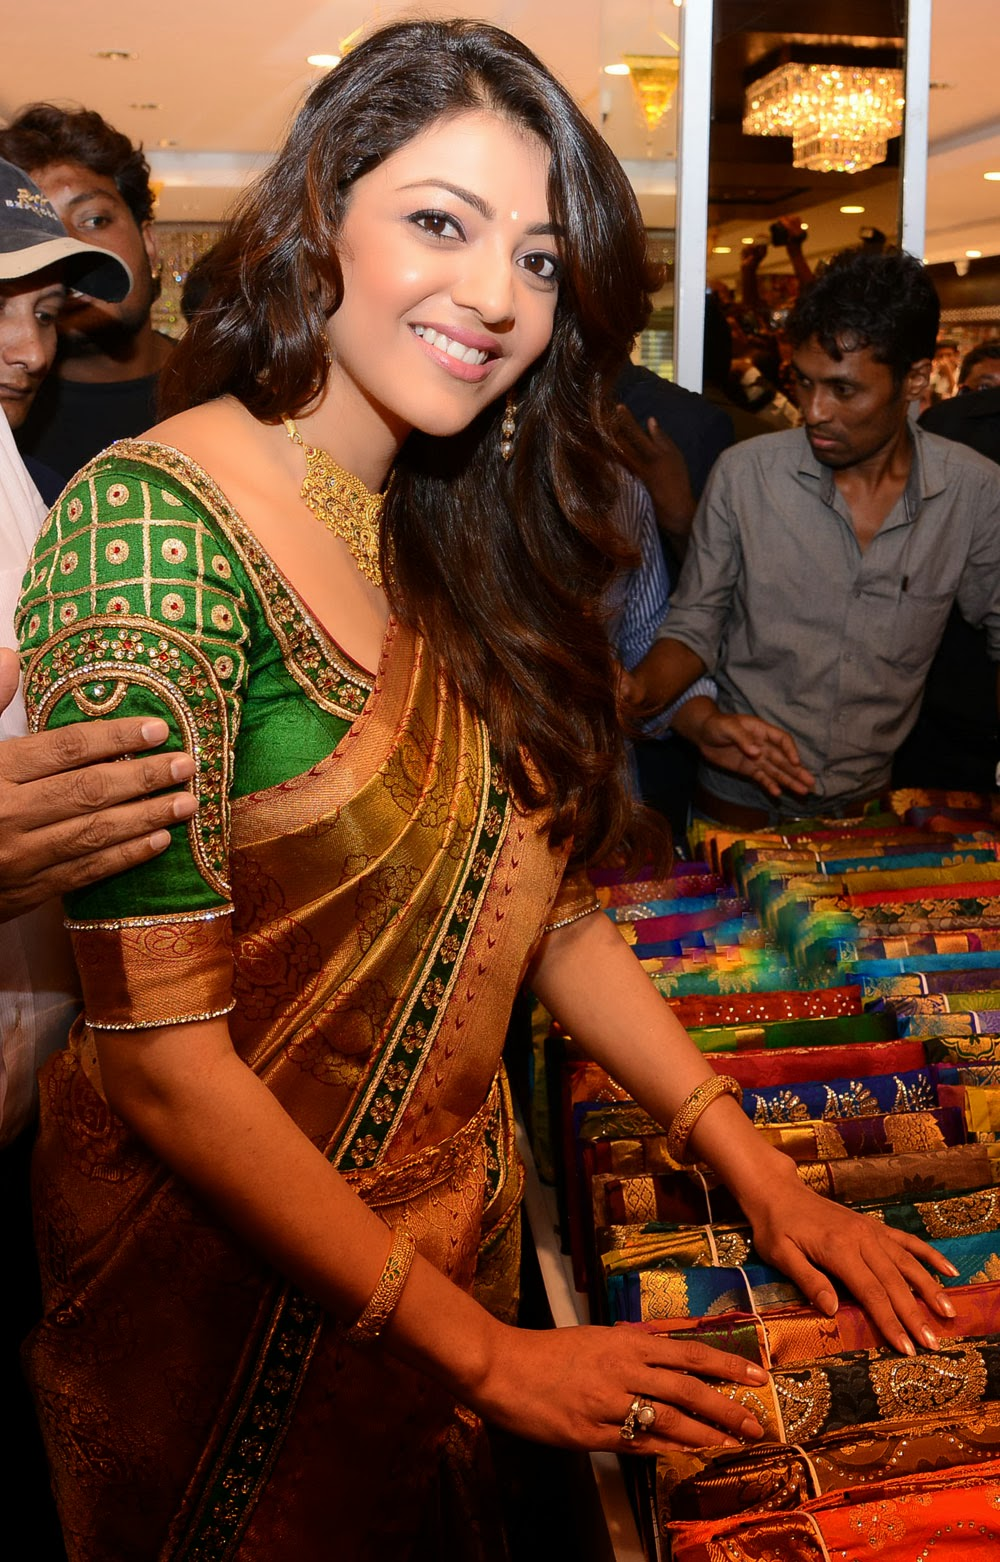 Kajal Agarwal in green blouse and golden saree, Kajal Agarwal side view in saree